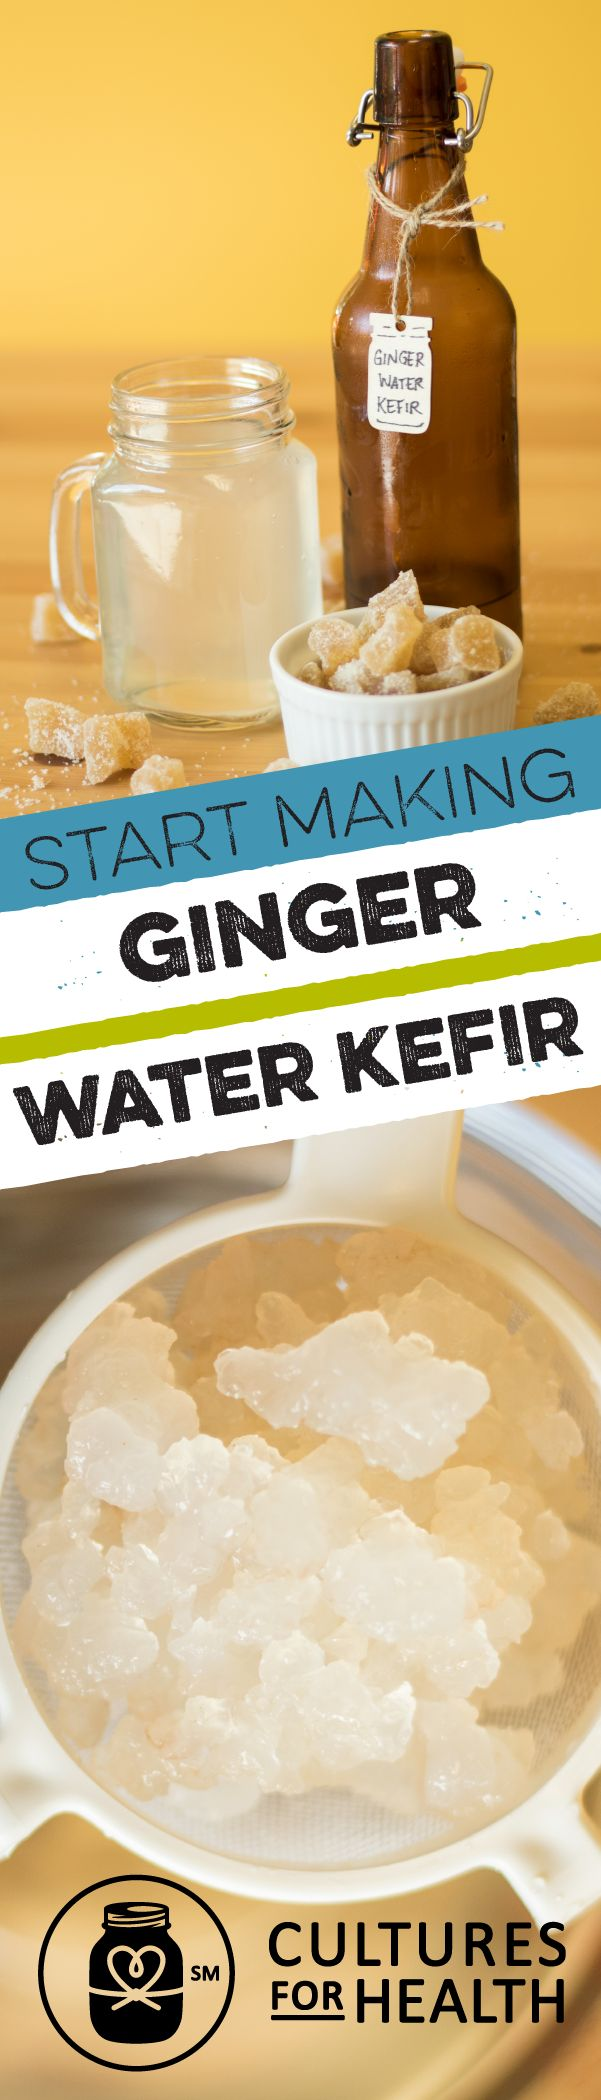 In just a few minutes each day you can prepare a sweet, fermented drink that will tickle your taste buds and make your gut happy. This kits includes our heirloom Water Kefir Grains that will last forever (with the right care) plus flavorings and supplies for bottling your water kefir. Just add kitchen staples.